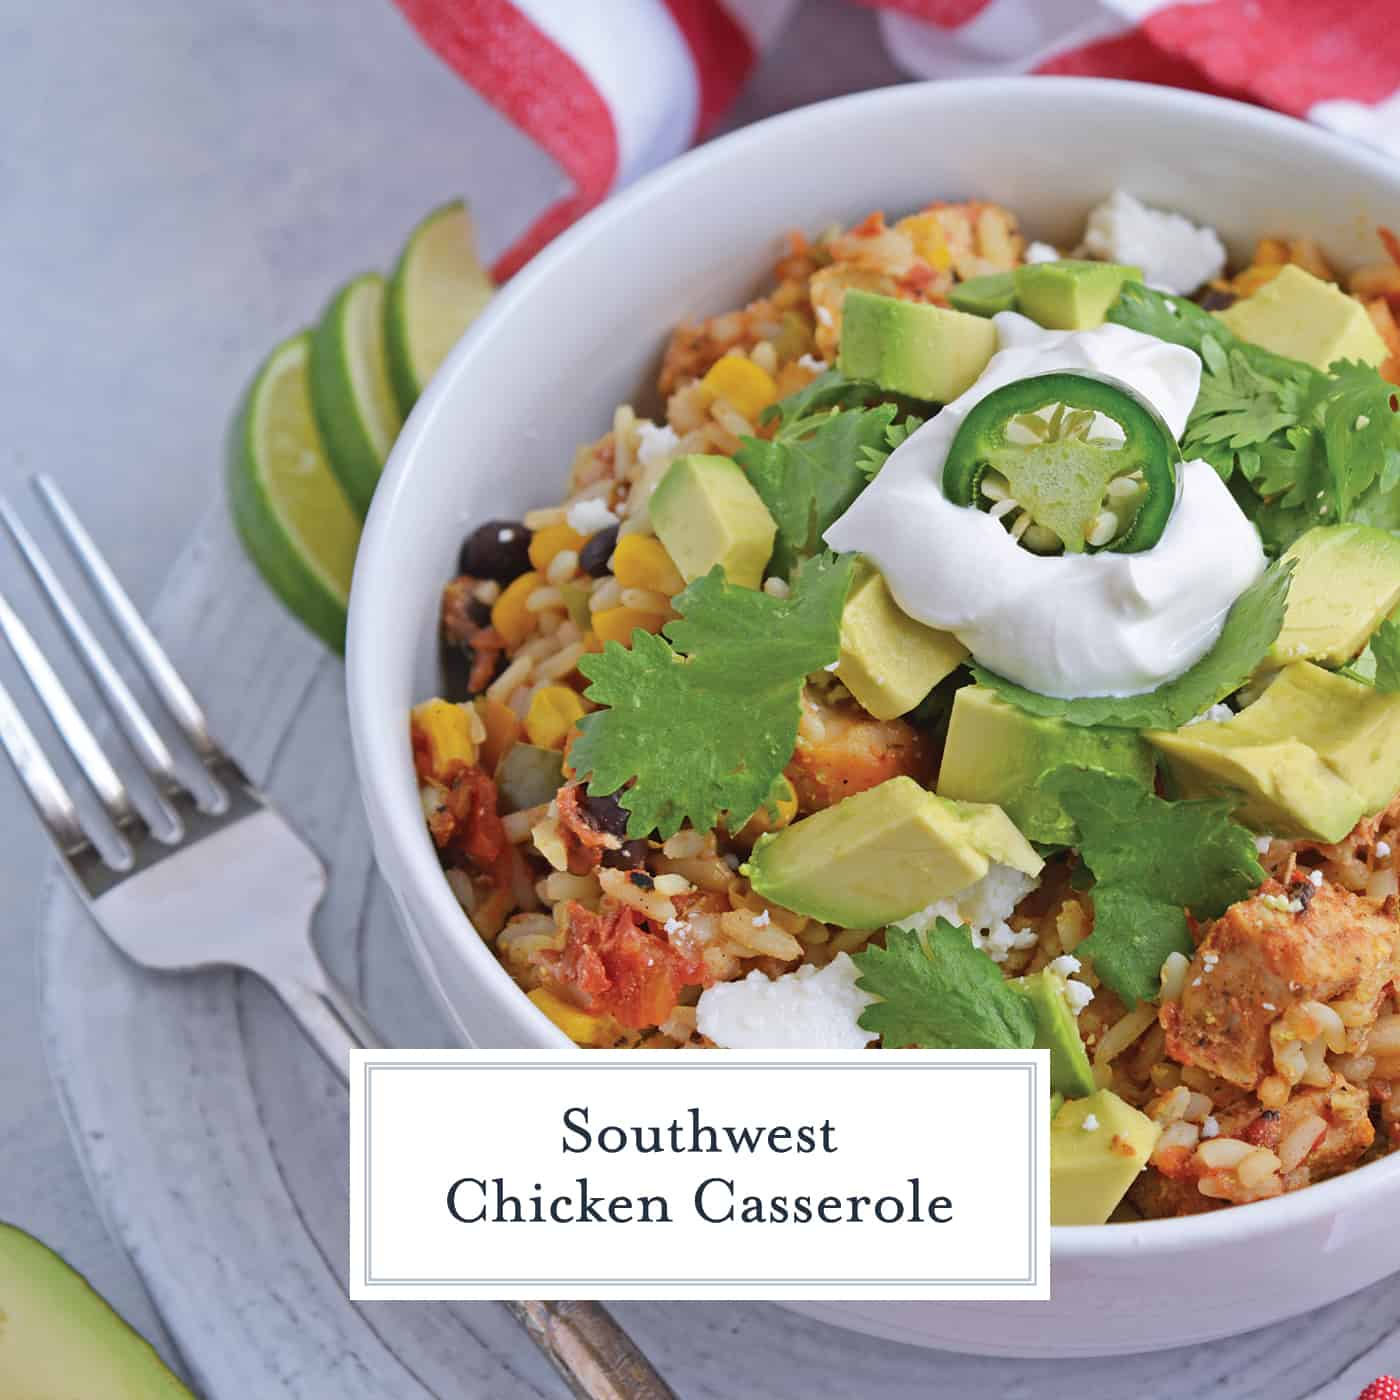 Southwest Chicken Casserole is an easy one-dish meal using chicken, rice, black beans, tomato, corn and southwest spices.#chickencasserole #onedishchickenrecipe www.savoryexperiments.com